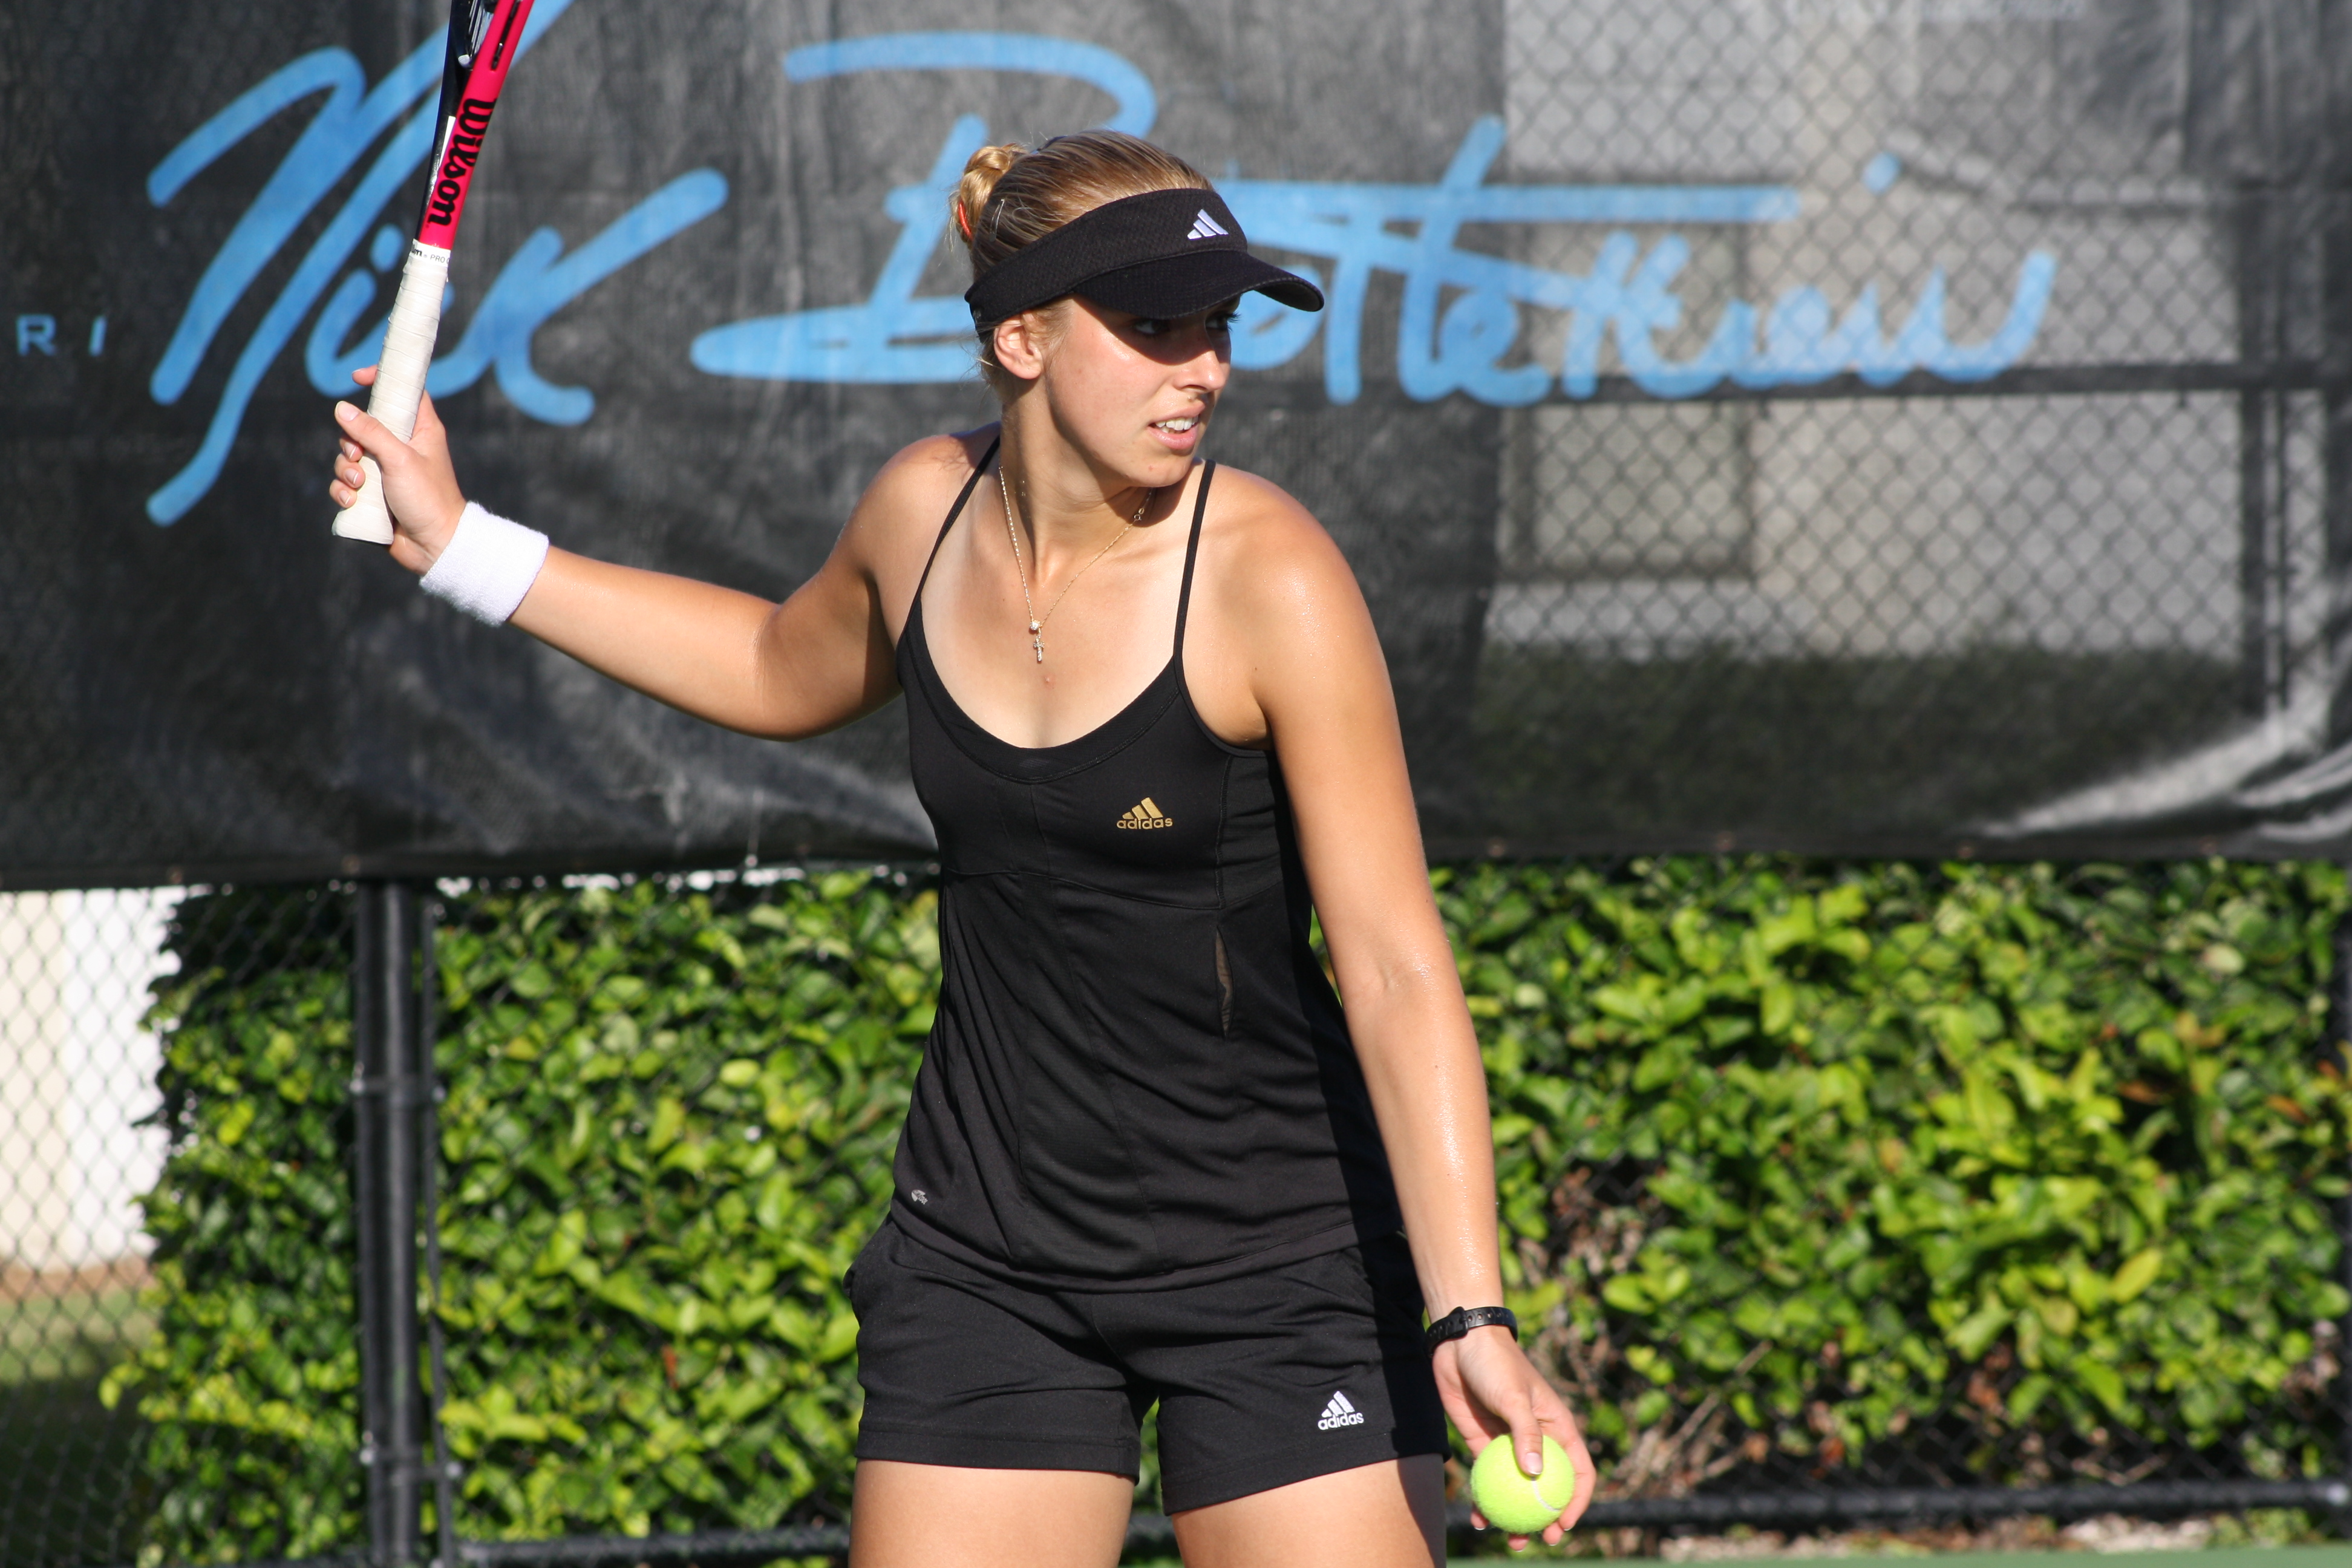 Sabine Lisicki practicing at the IMG Bollettieri Tennis Academy